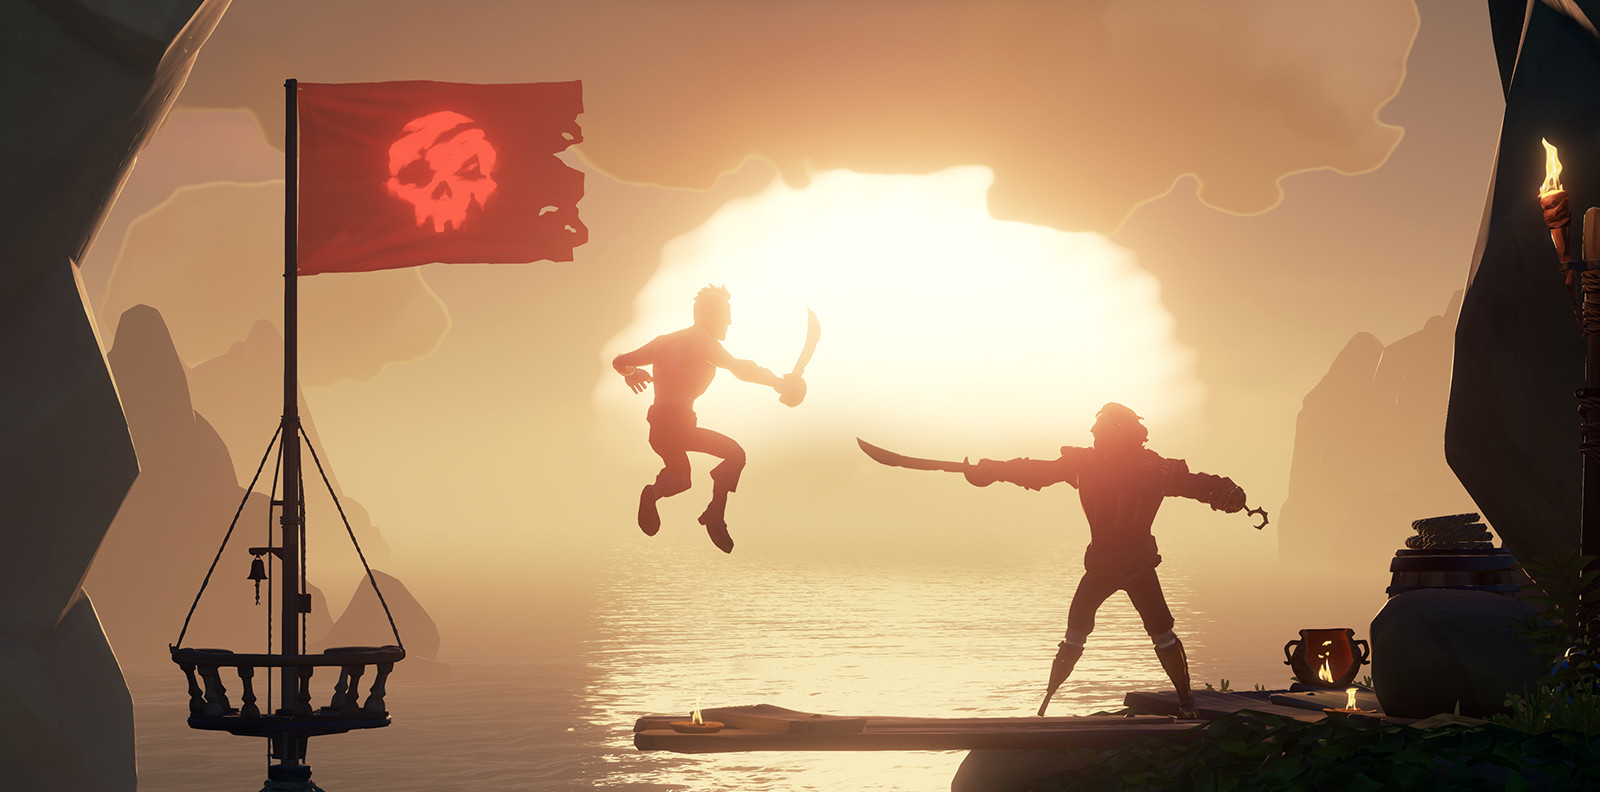 adeda4b4ce414 Sea of Thieves 1.4.4 update introduces a new Mercenary Voyage type ...